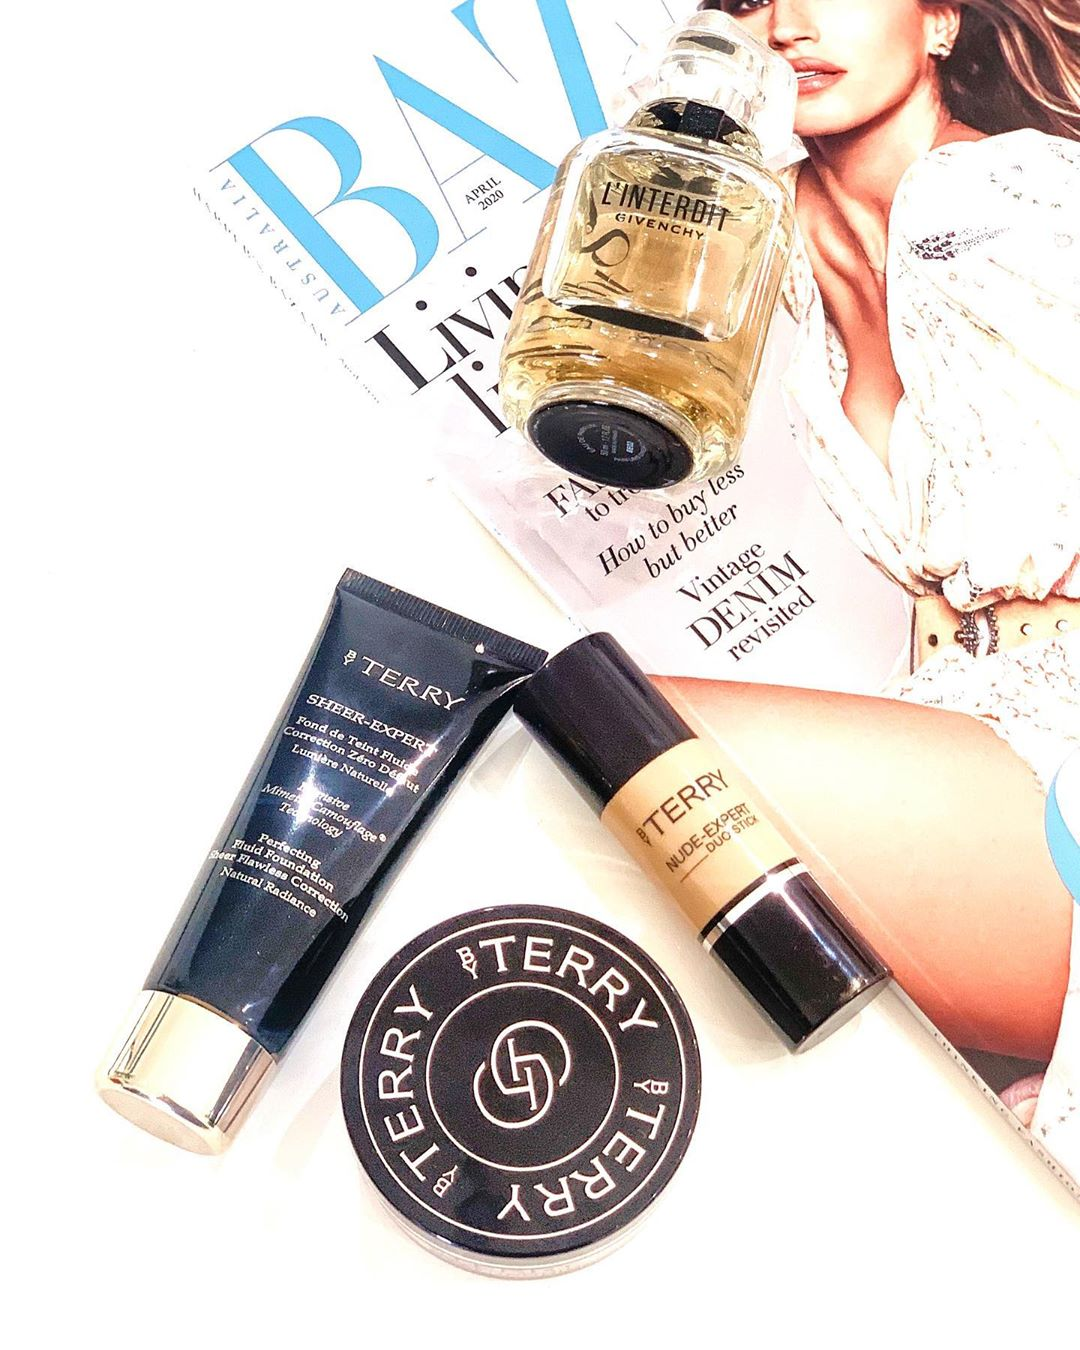 Little Makeup To Get Us Through This Tue Meccabeautyjunkie - Makeup Products